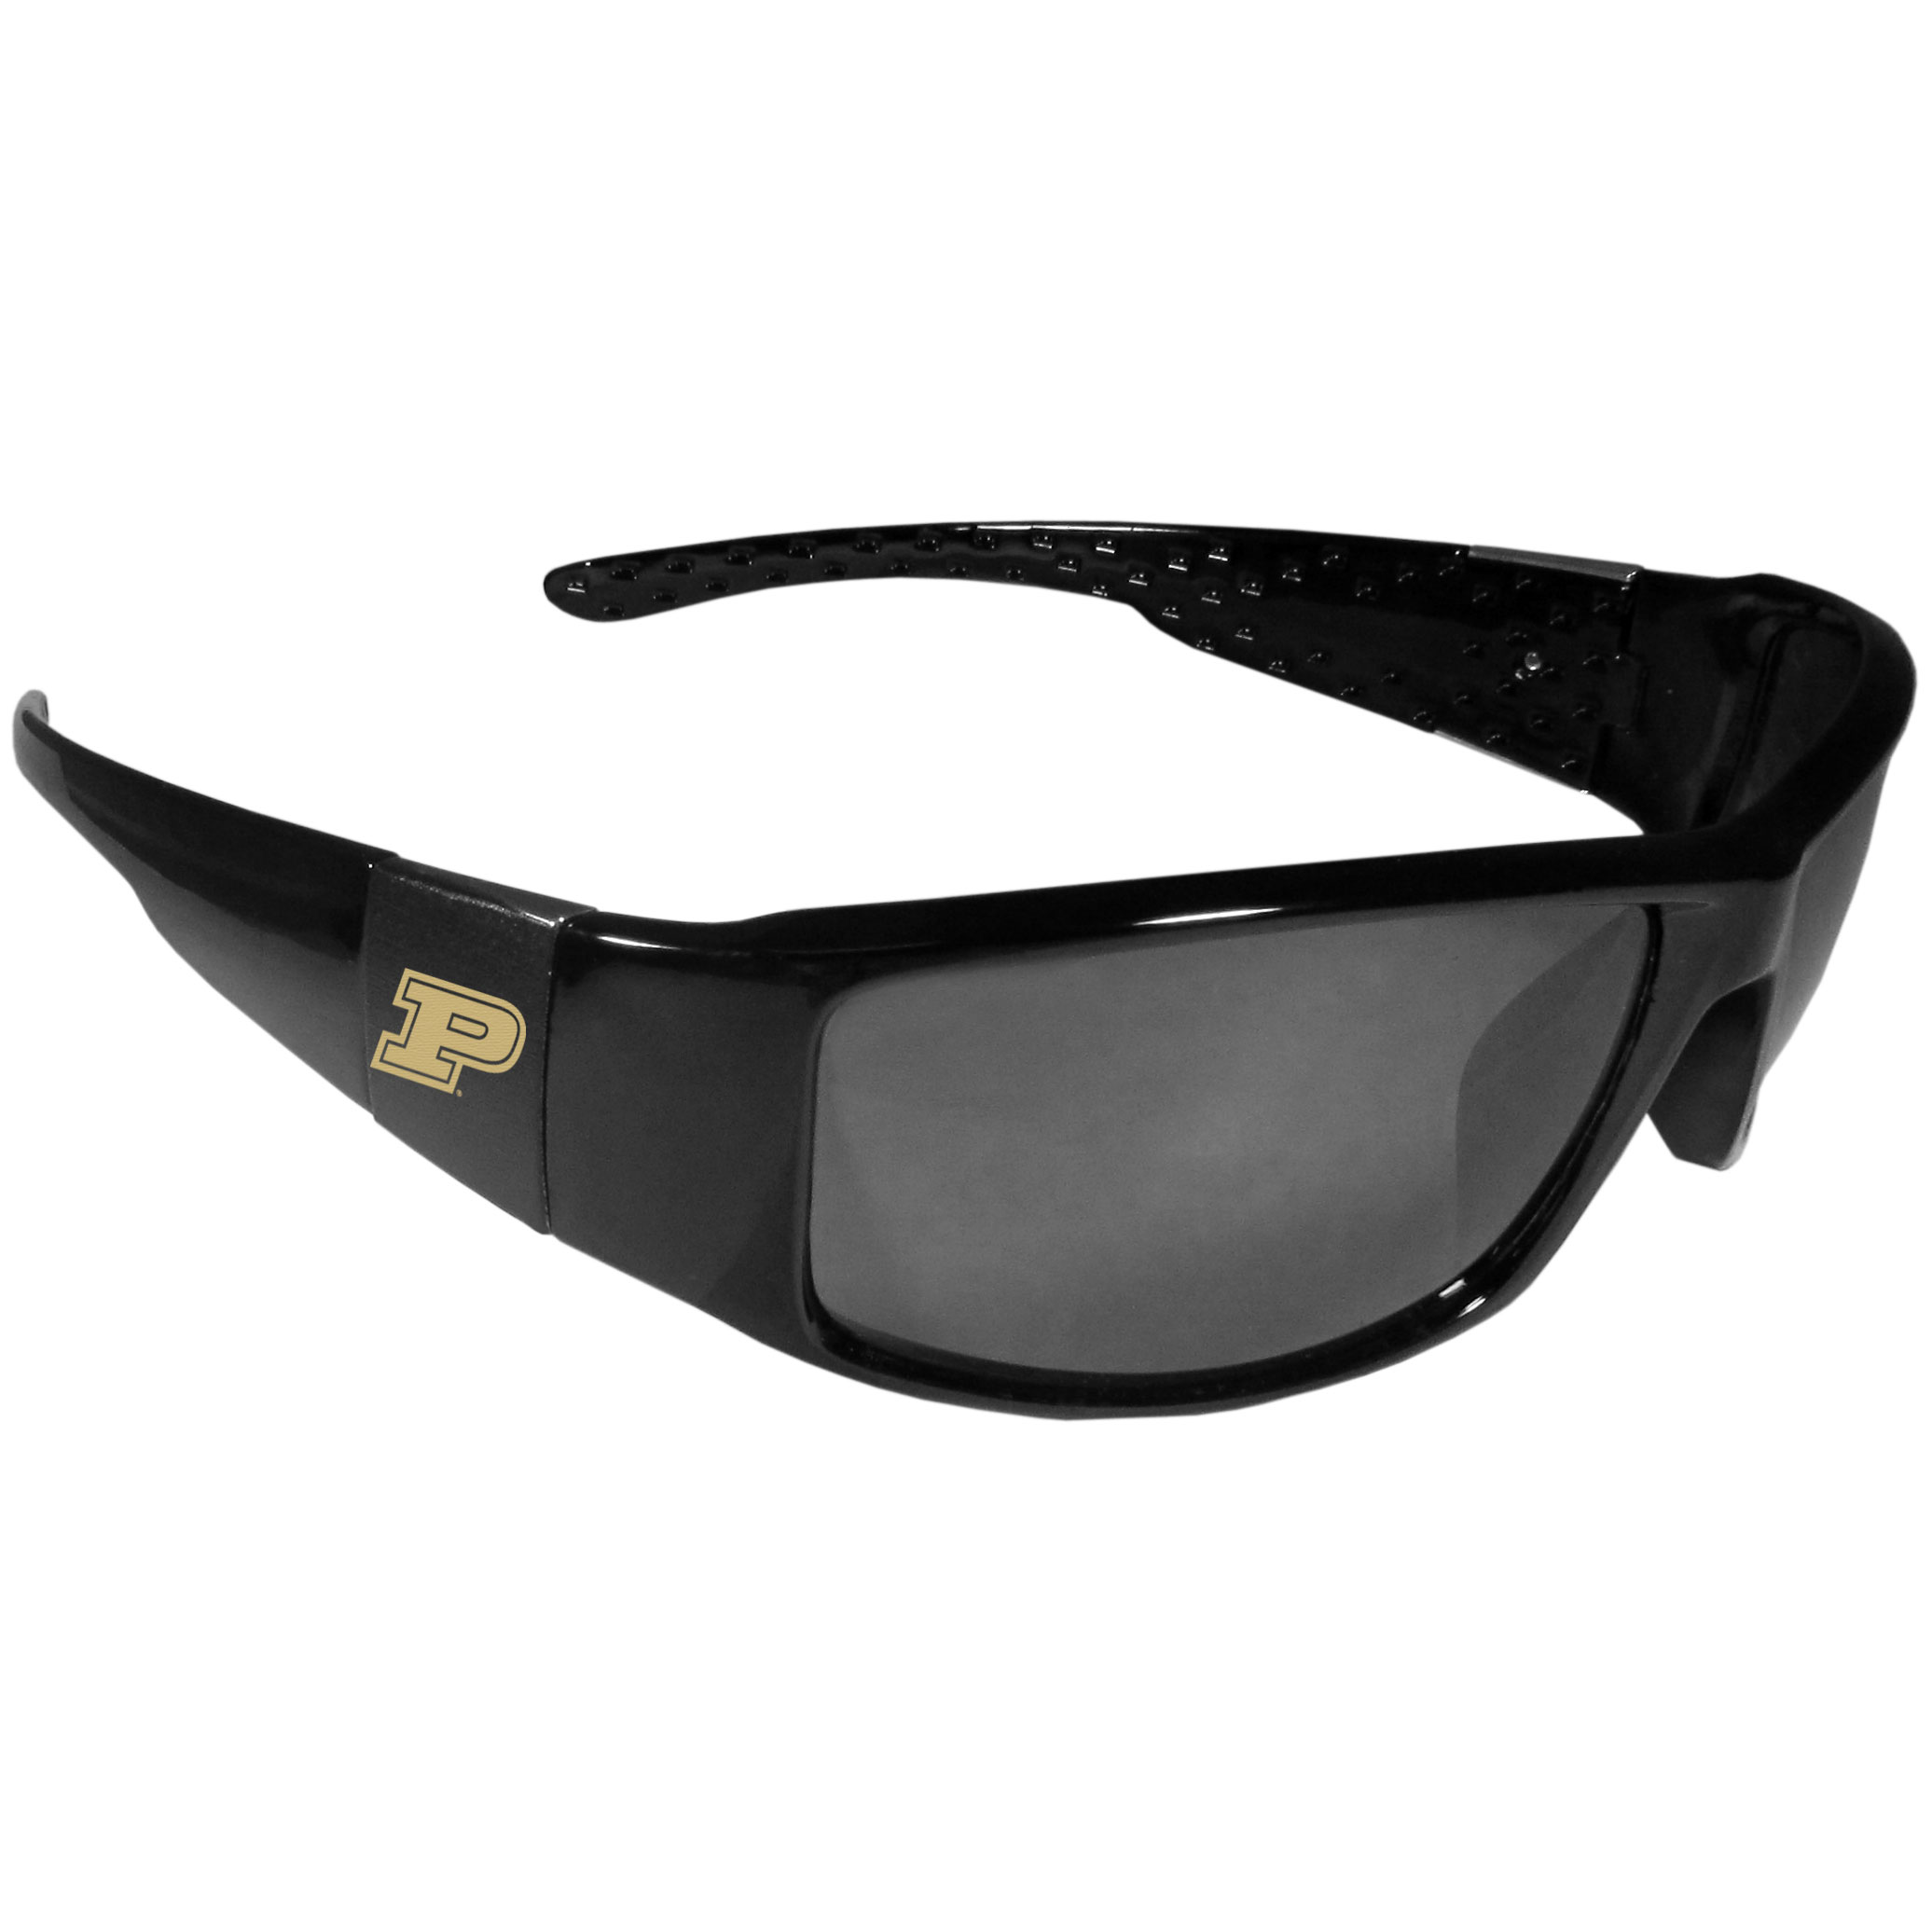 Purdue Boilermakers Black Wrap Sunglasses - These designer inspired frames have a sleek look in all black with  Purdue Boilermakers shields on each arm with a printed logo. The shades are perfect for any outdoor activity like; golfing, driving, hiking, fishing or cheering on the team at a tailgating event or at a home game day BBQ with a lens rating of 100% UVA/UVB for maximum UV protection. The high-quality frames are as durable as they are fashionable and with their classic look they are the perfect fan accessory that can be worn everyday for every occasion.